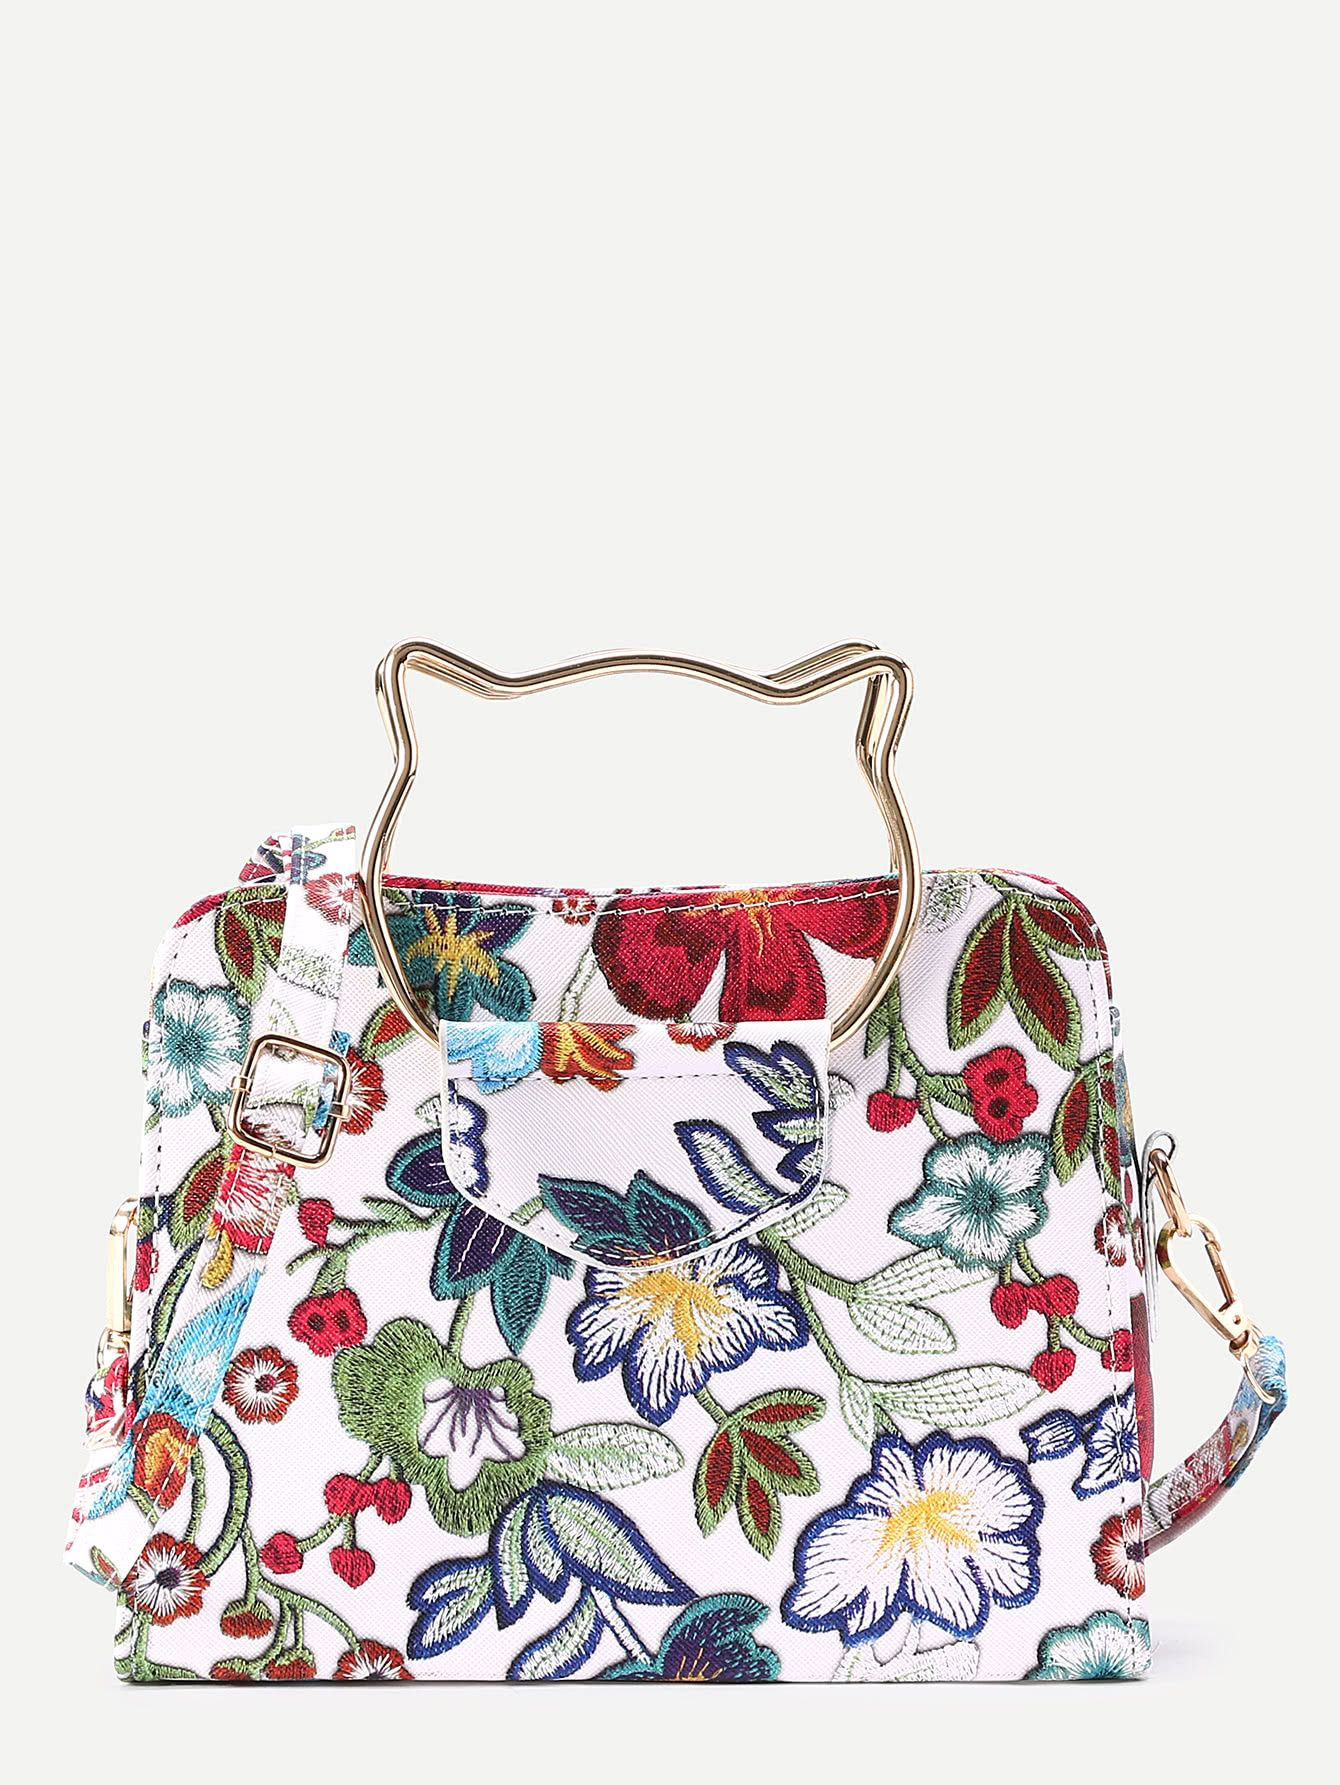 ecaddf8f25 Shop Flower Embroidery Shoulder Bag With Cat Ear Handle online. SheIn  offers Flower Embroidery Shoulder